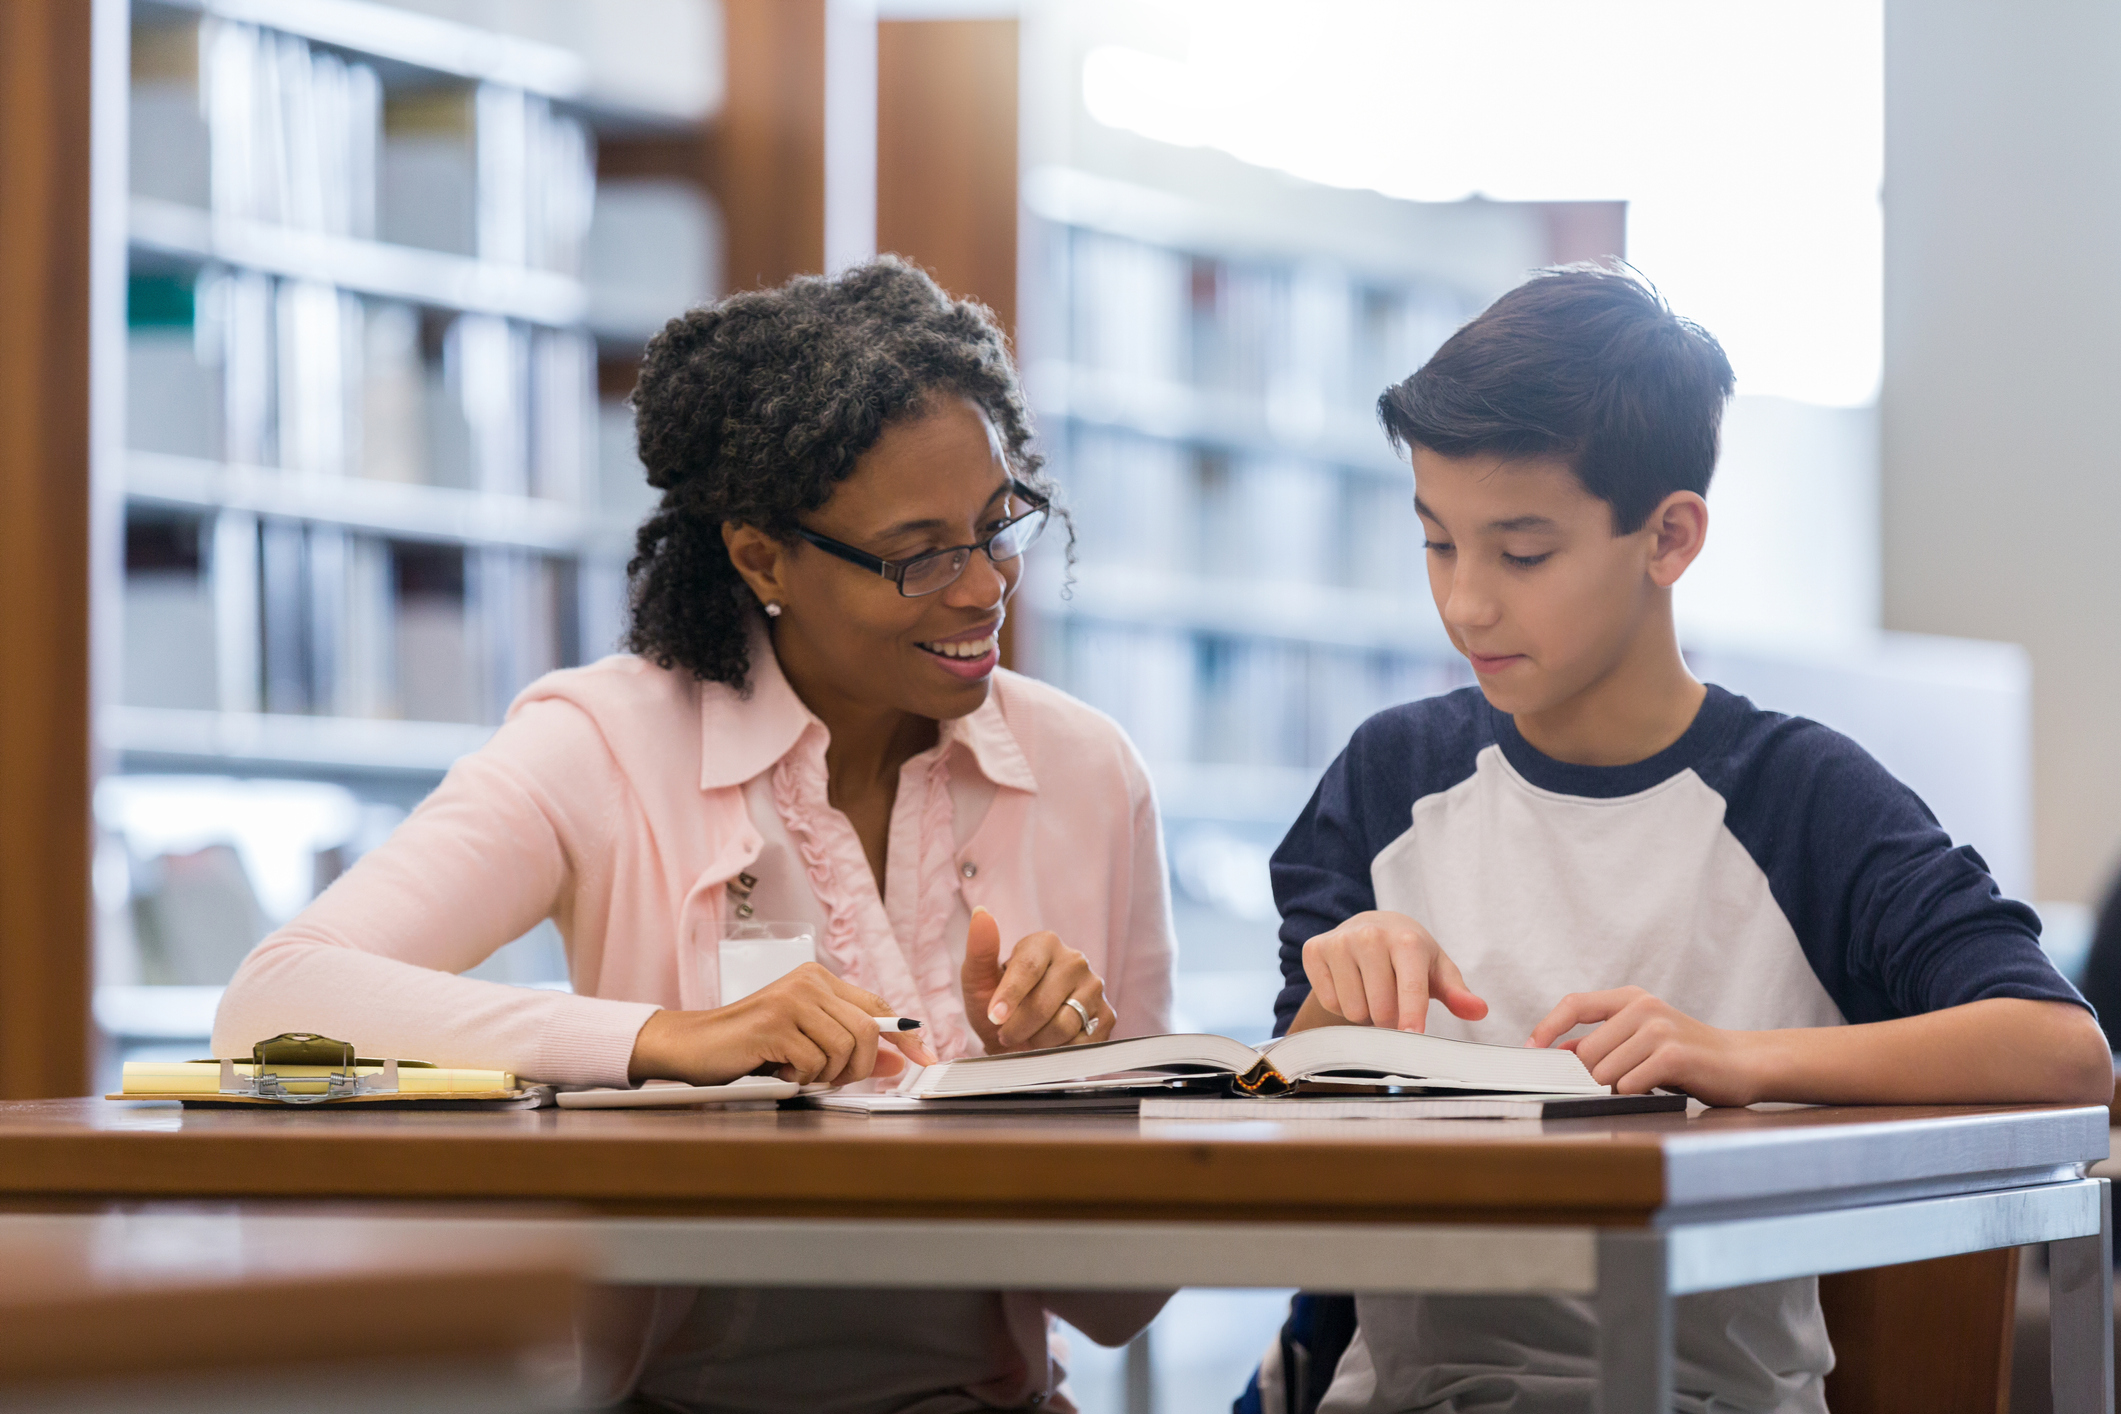 Tutor working with middle school student